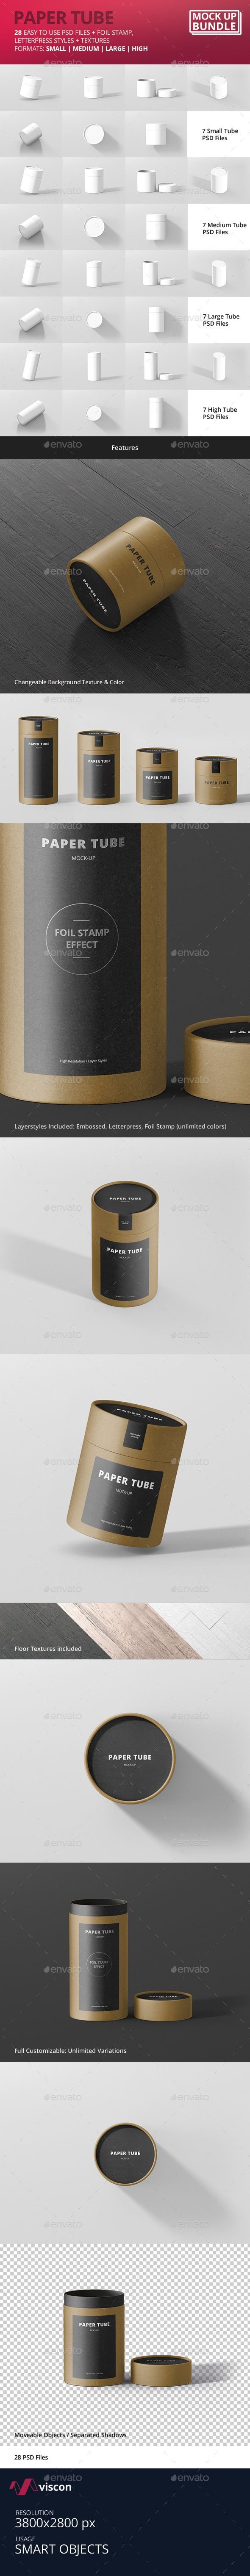 Image result for Slim Paper Tube Mockup Bundle 19430984